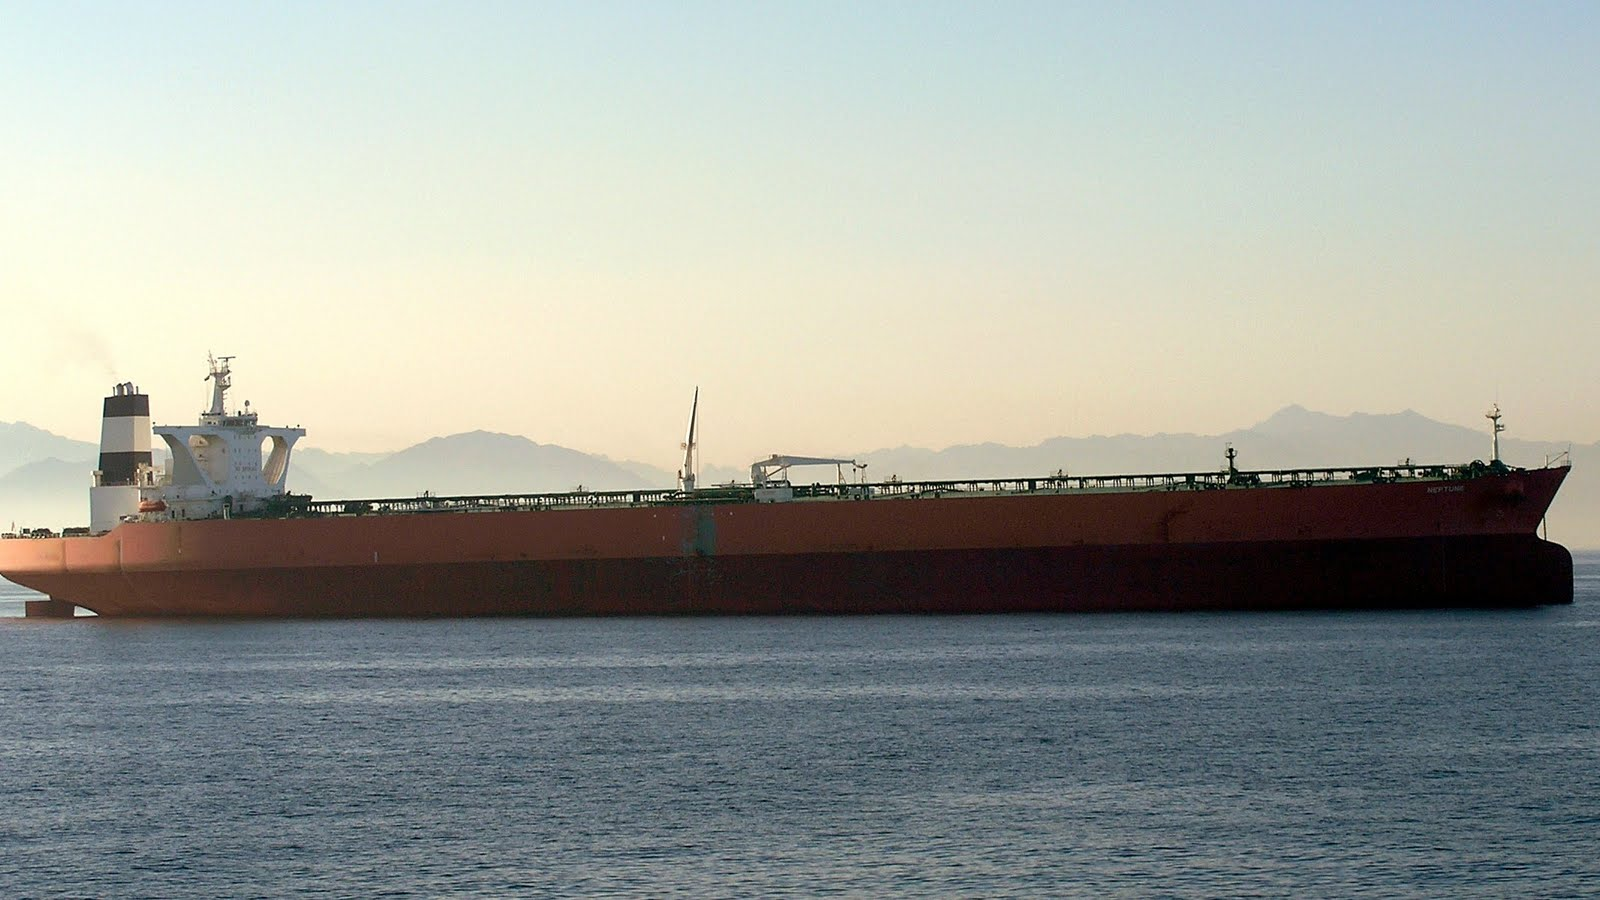 Samho Dream - US $9.5